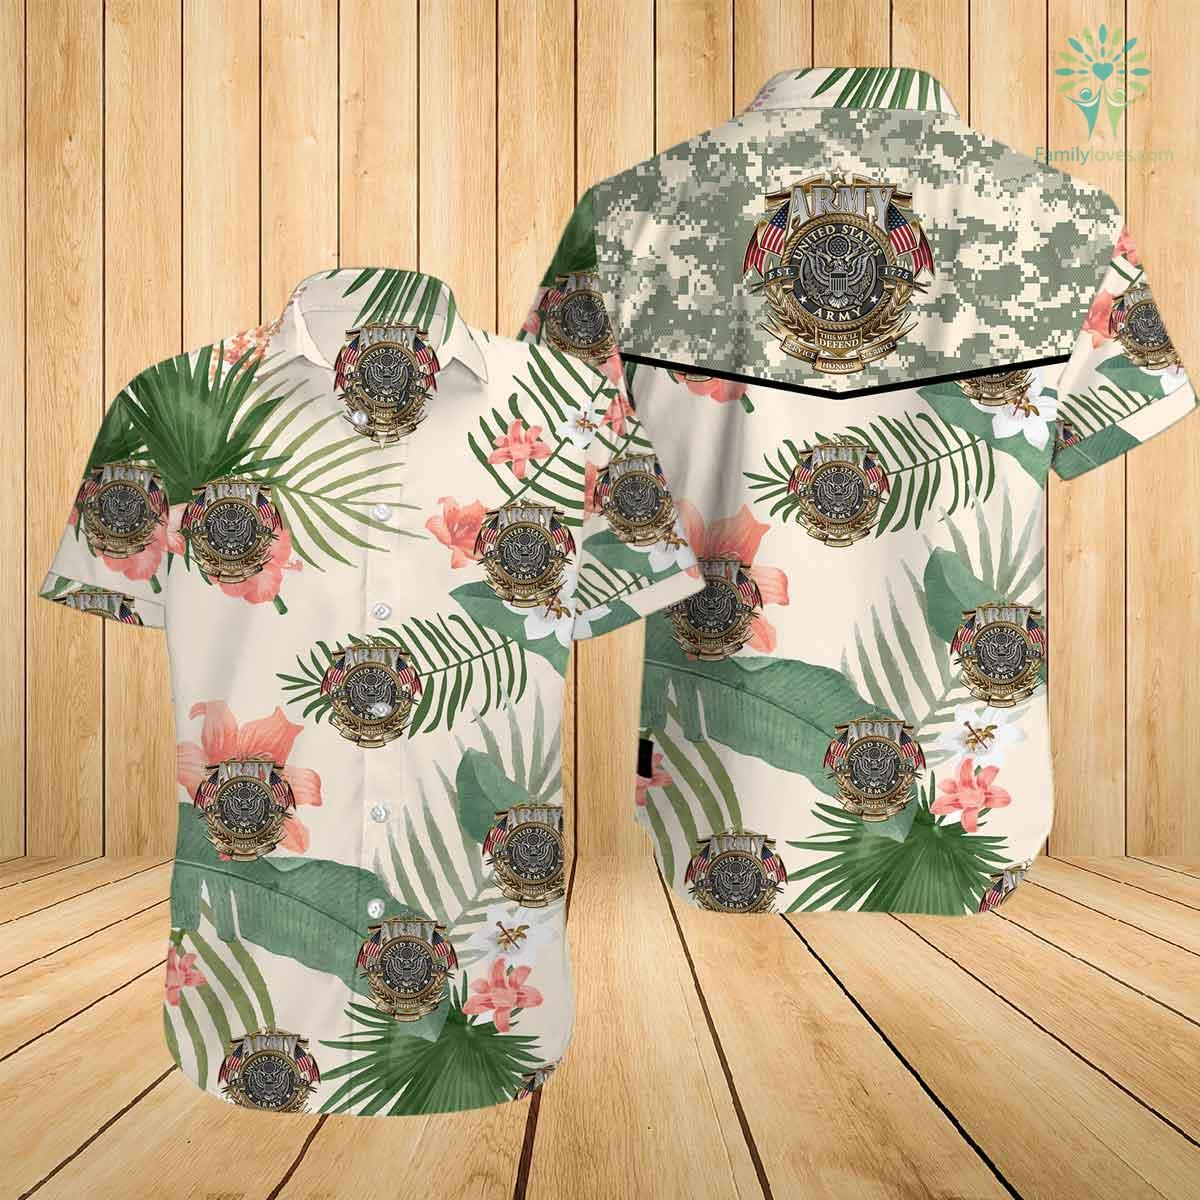 US army this we'll defend since 1775 honor service sacrifice all over printed hawaiian shirt 2